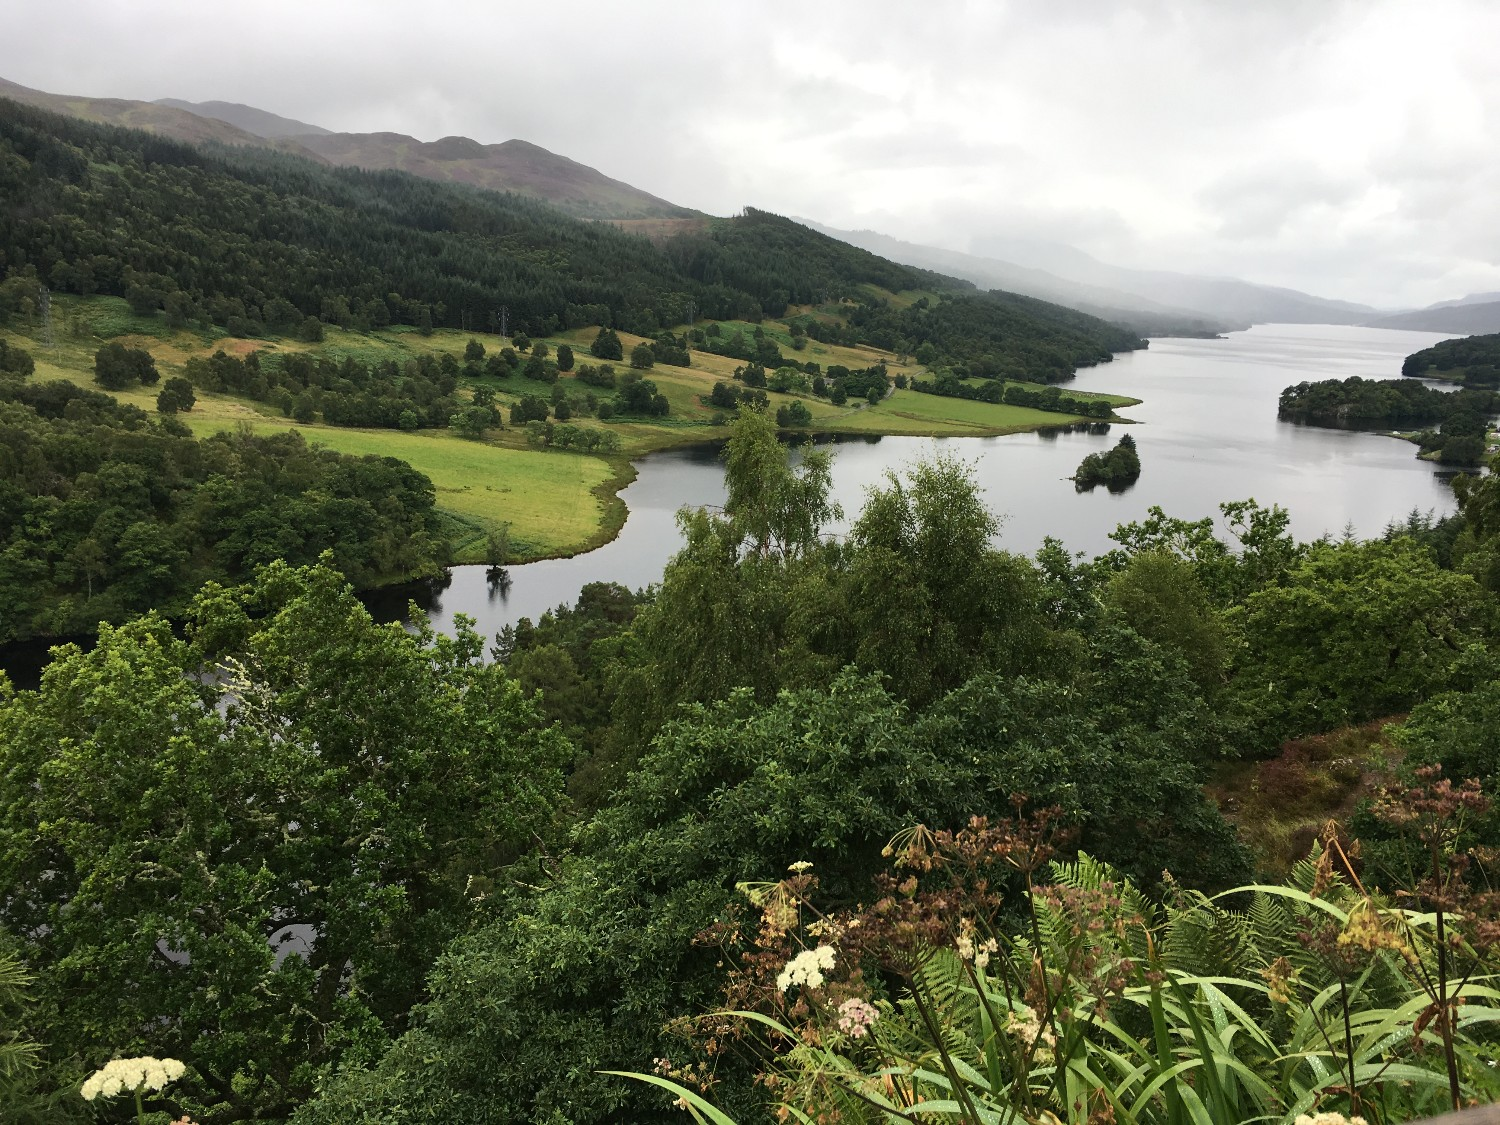 Queens View in Pitlochry - an easy day trip from Edinburgh for this lush vista over Loch Tummel